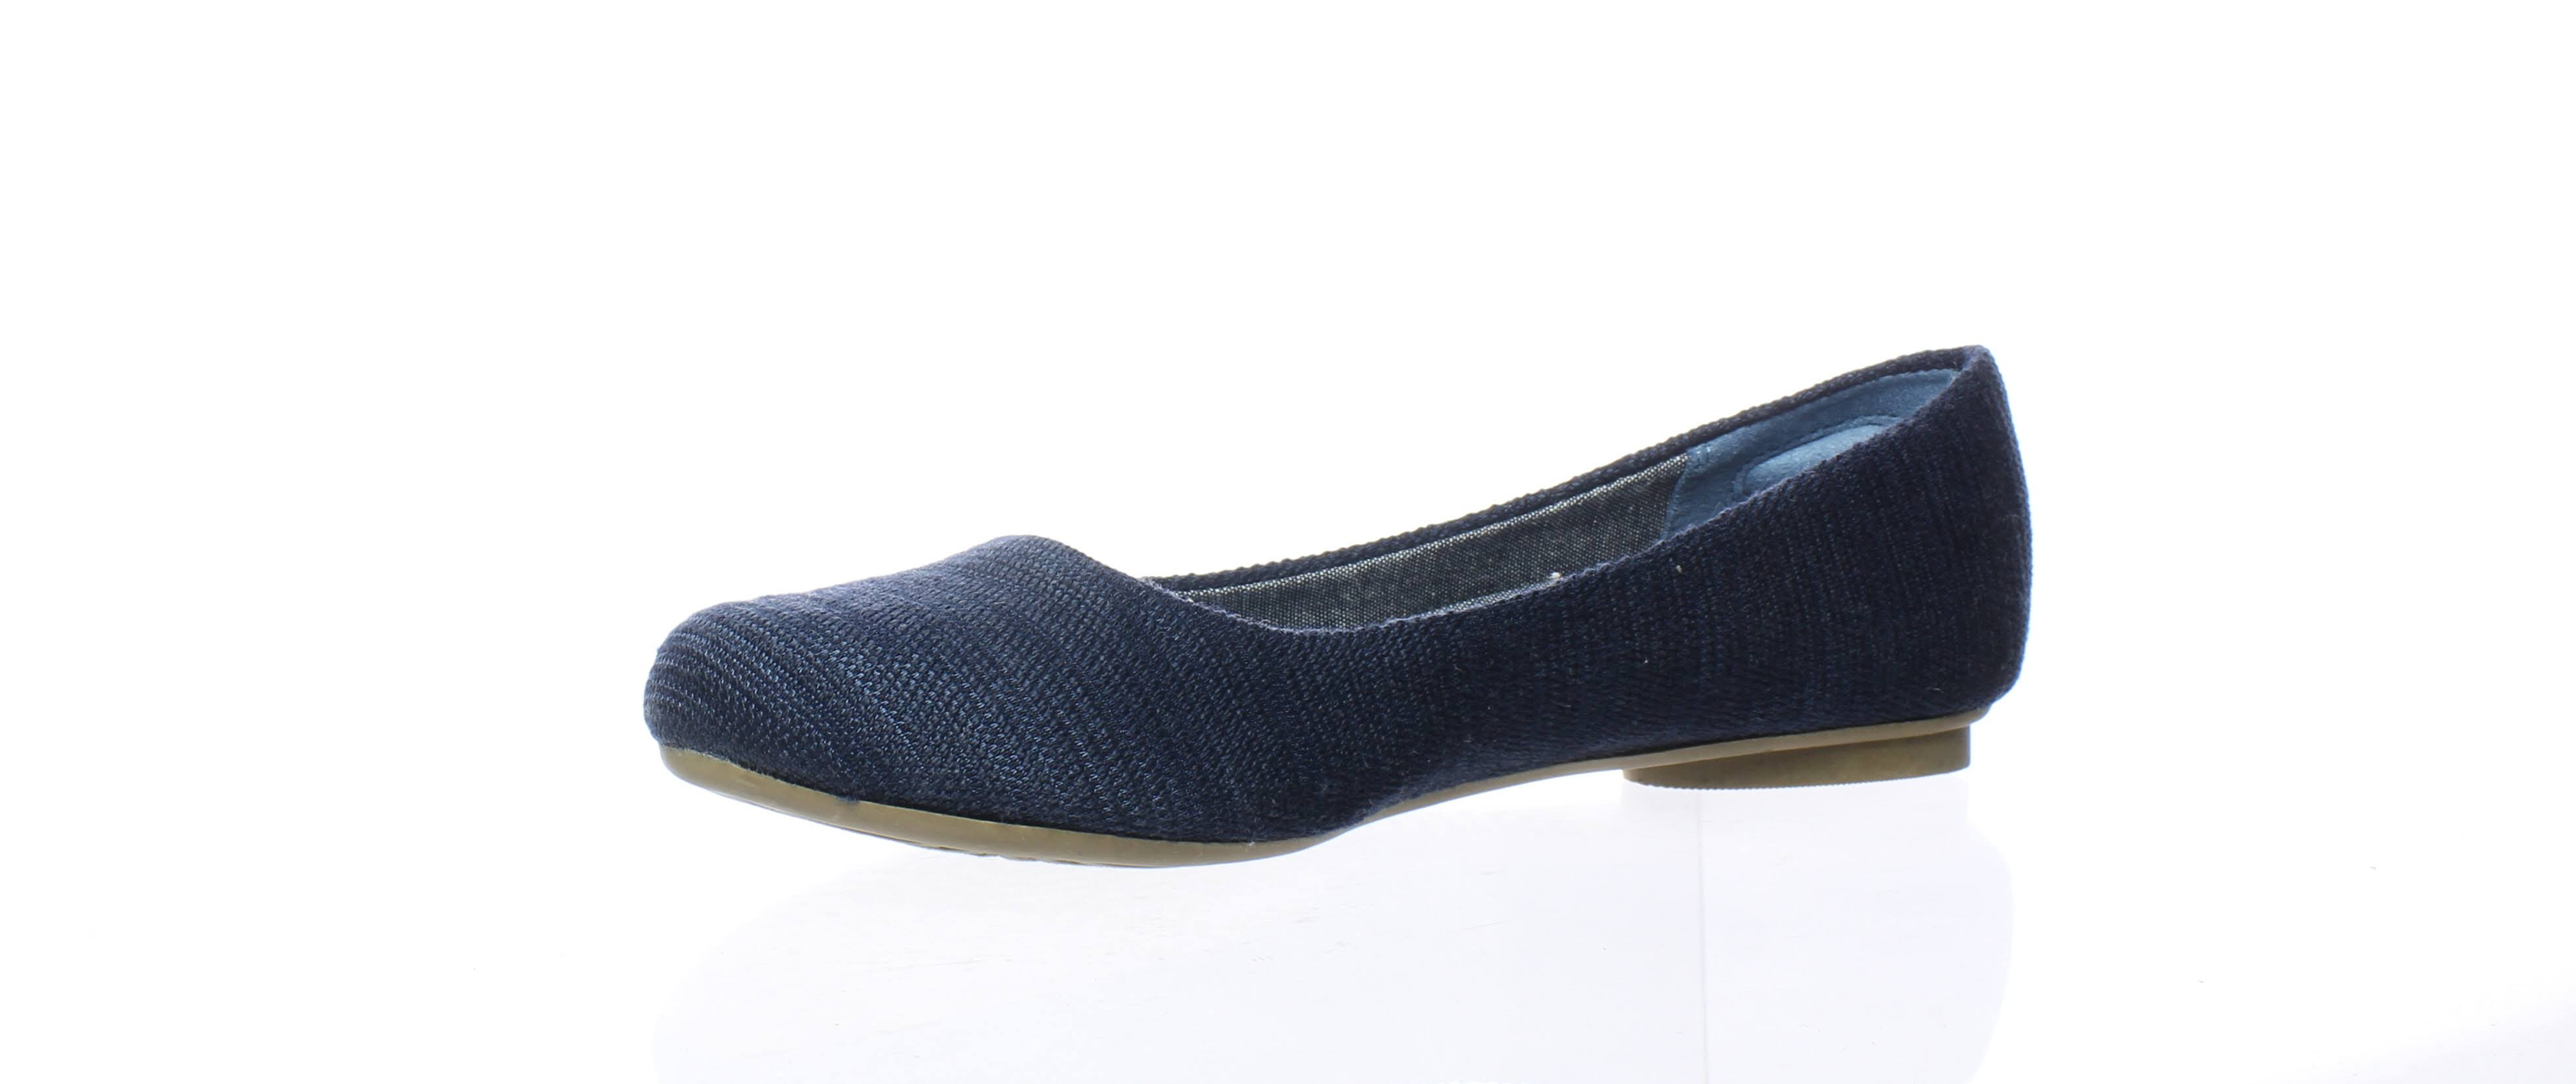 Switchback 5 DrScholl's Knit6 2 M Friendly Damesschoenen Navy PZuOkXiT